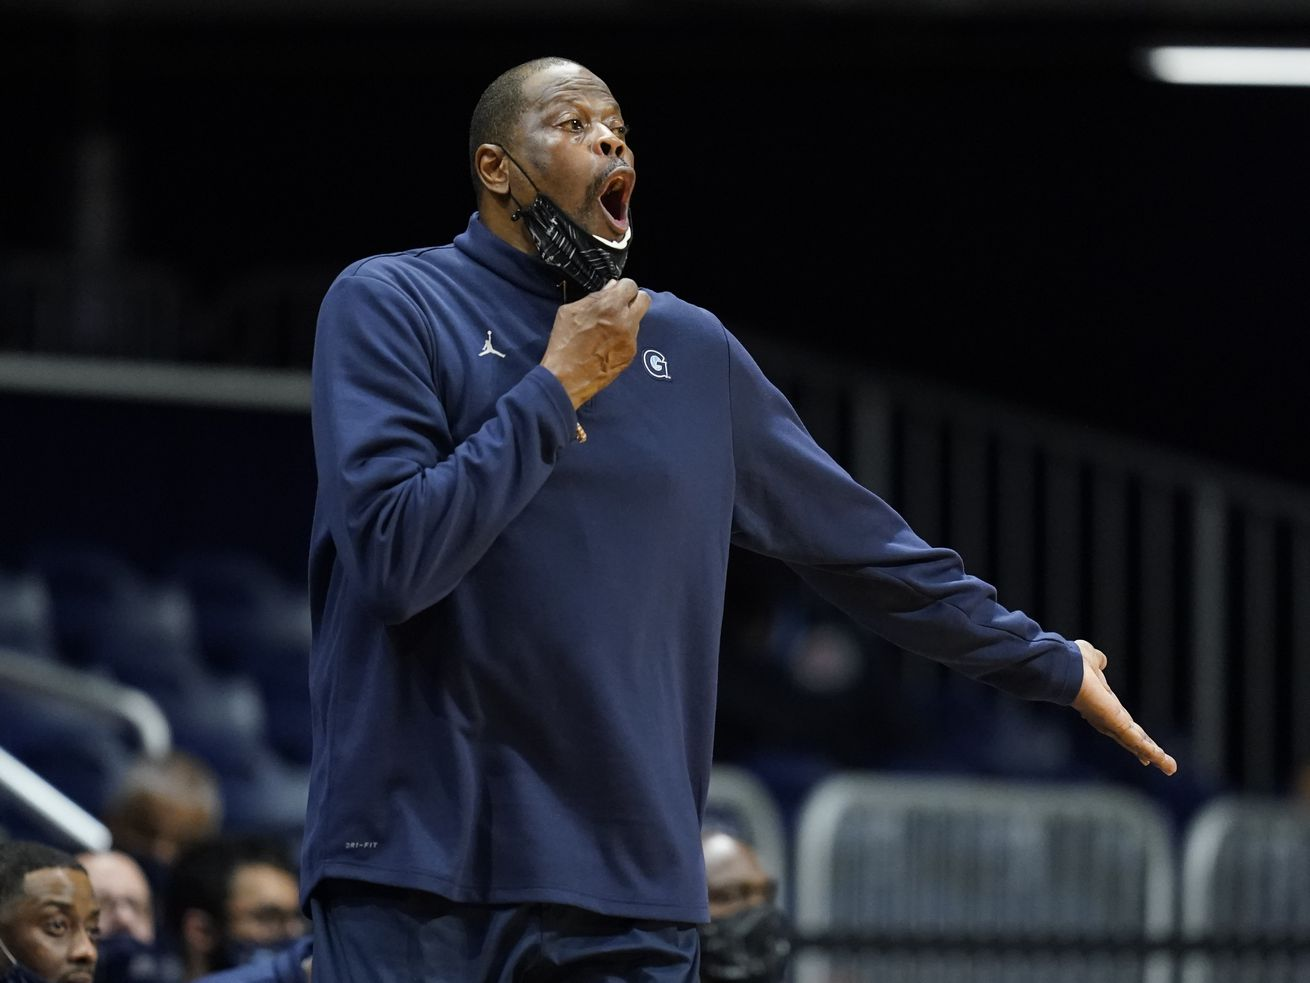 Georgetown coach Patrick Ewing will not lead his team against DePaul tonight.